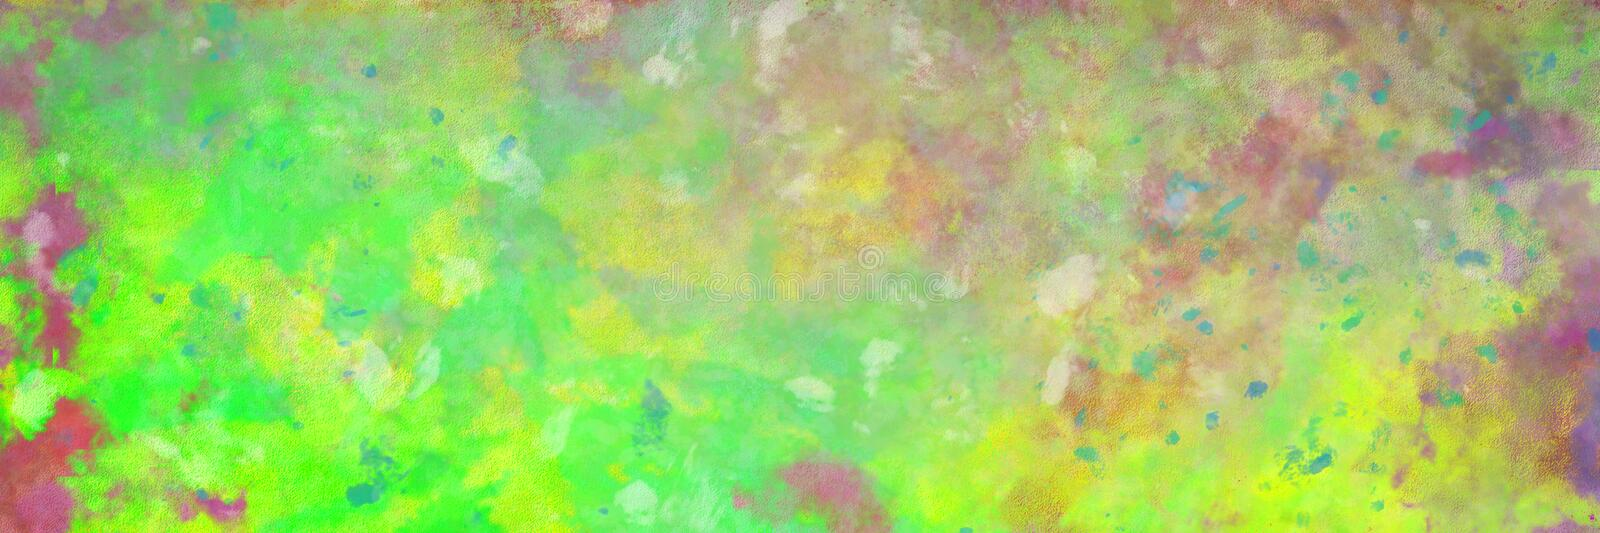 Abstract background with painted stains and old vintage texture in bright neon ufo green pink blue purple white and yellow colors vector illustration